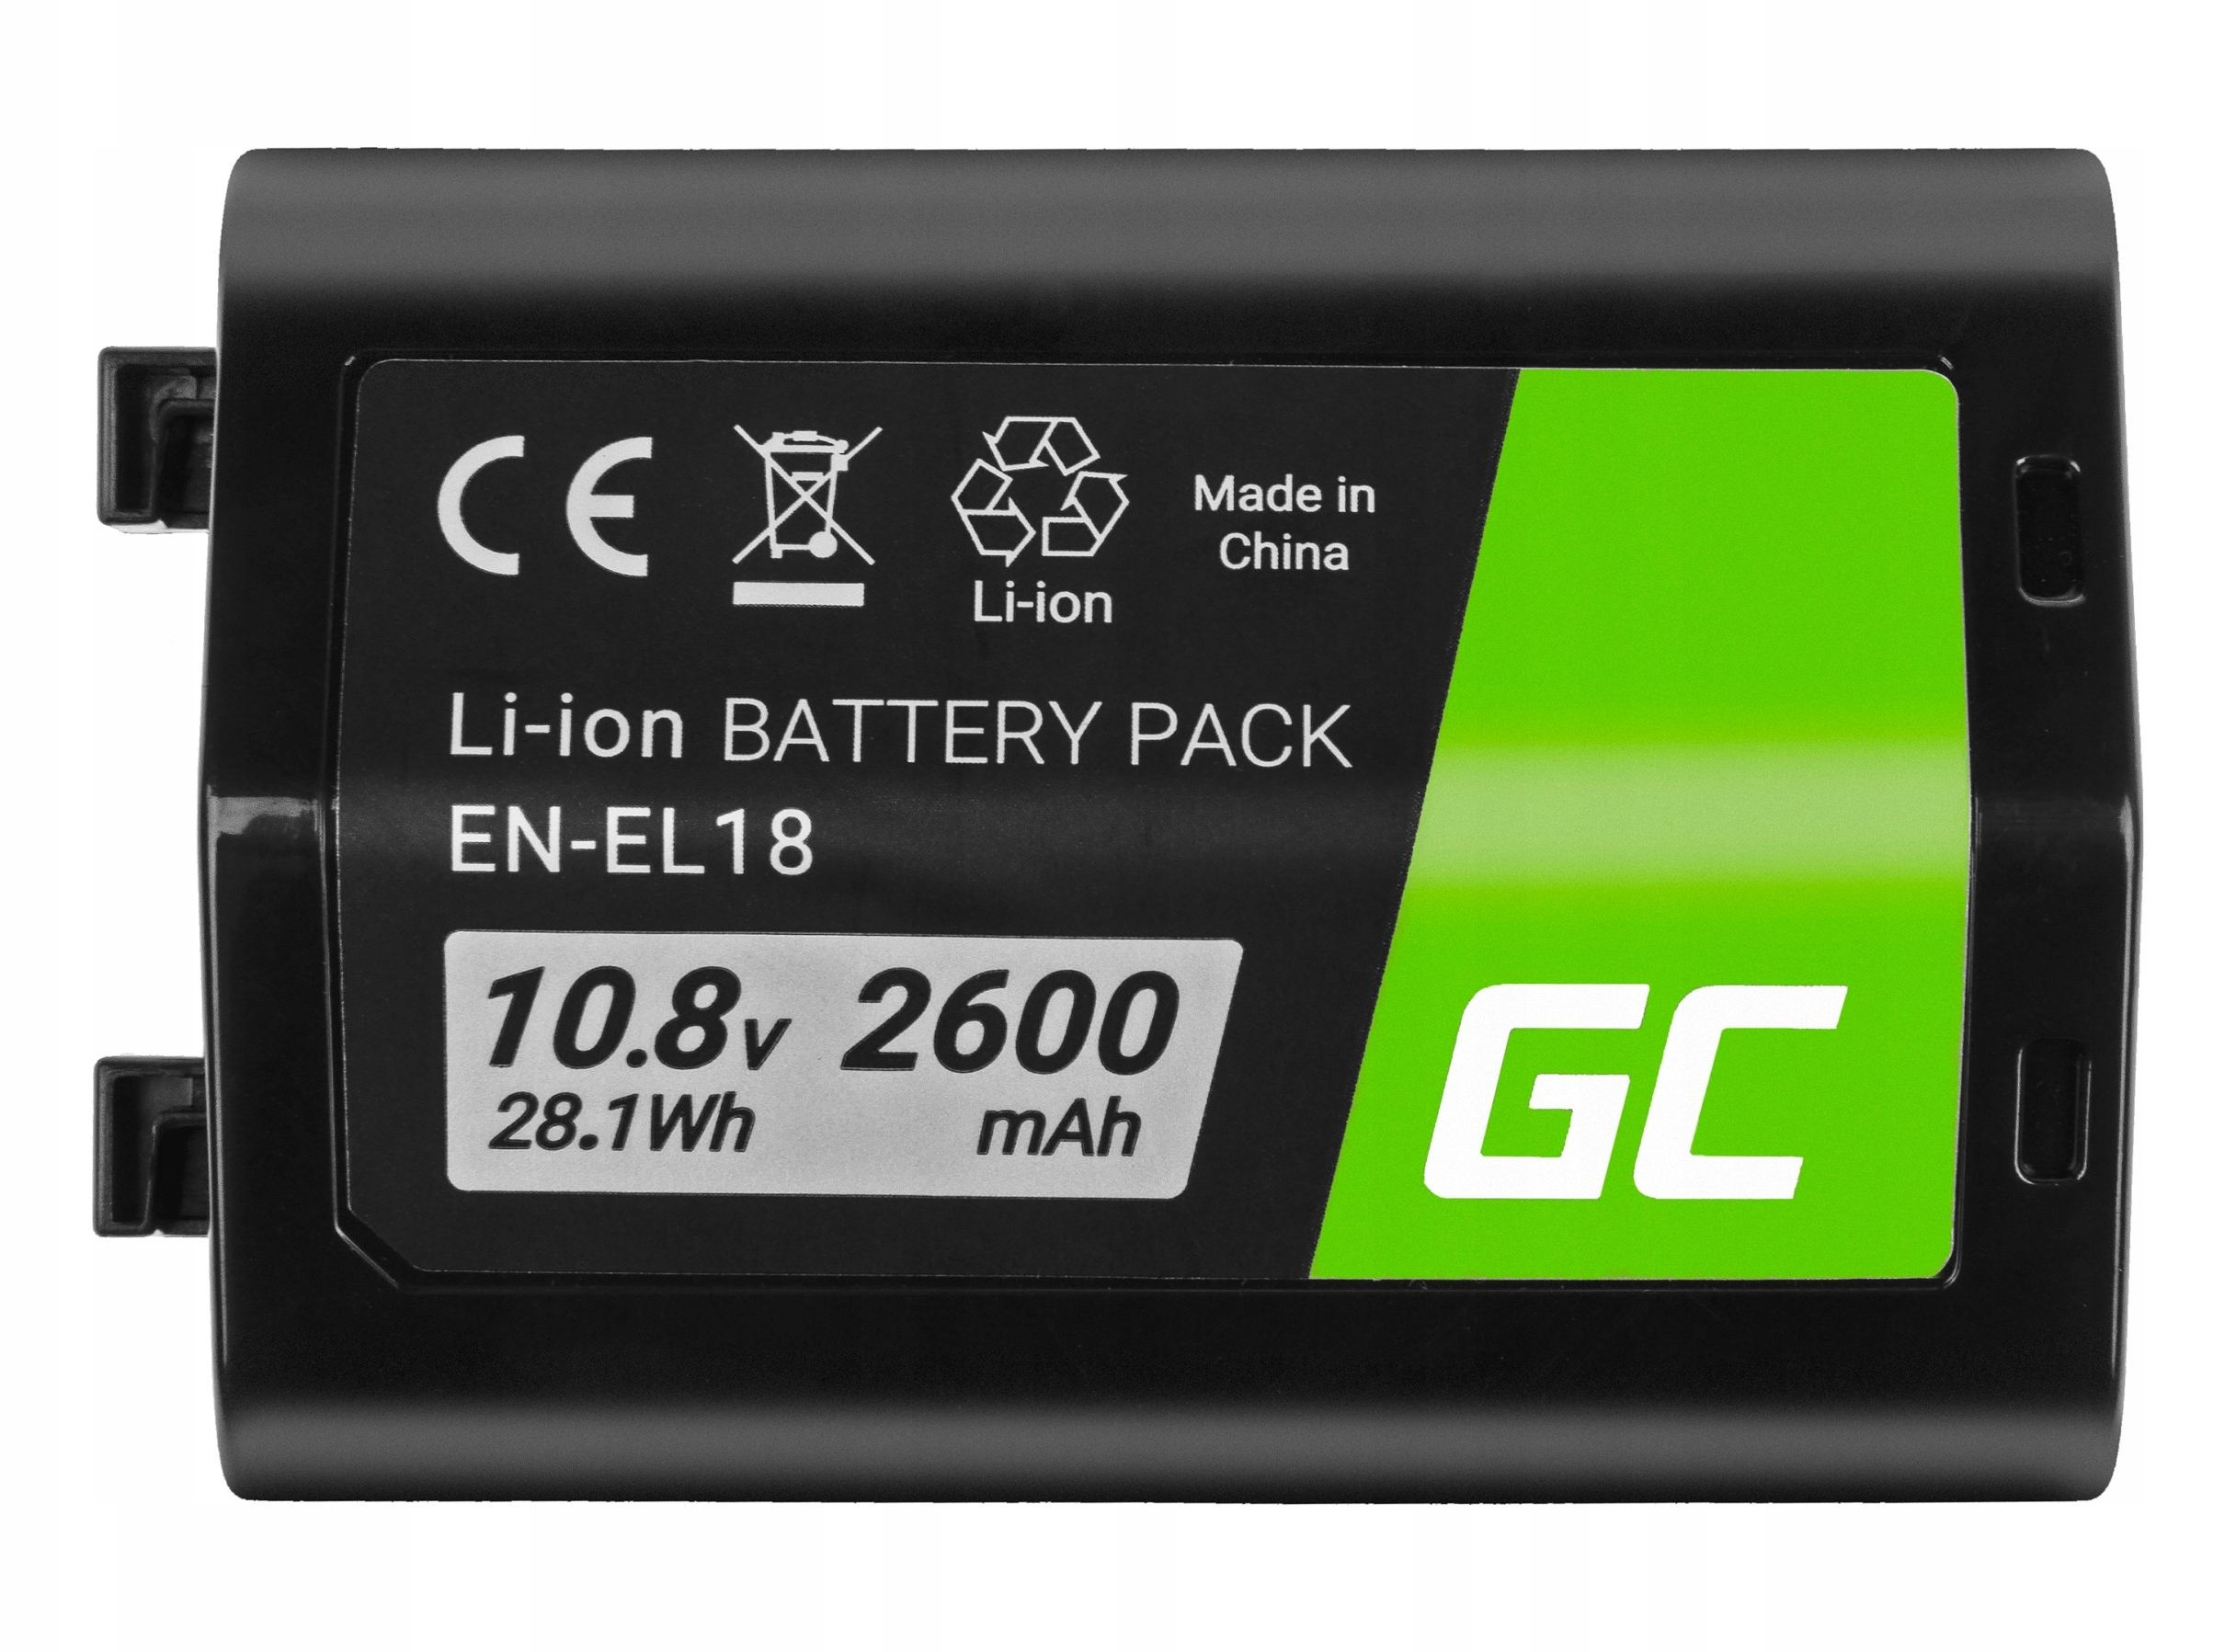 NIKON EN-EL18 Lithium-ion Battery AM4X26004